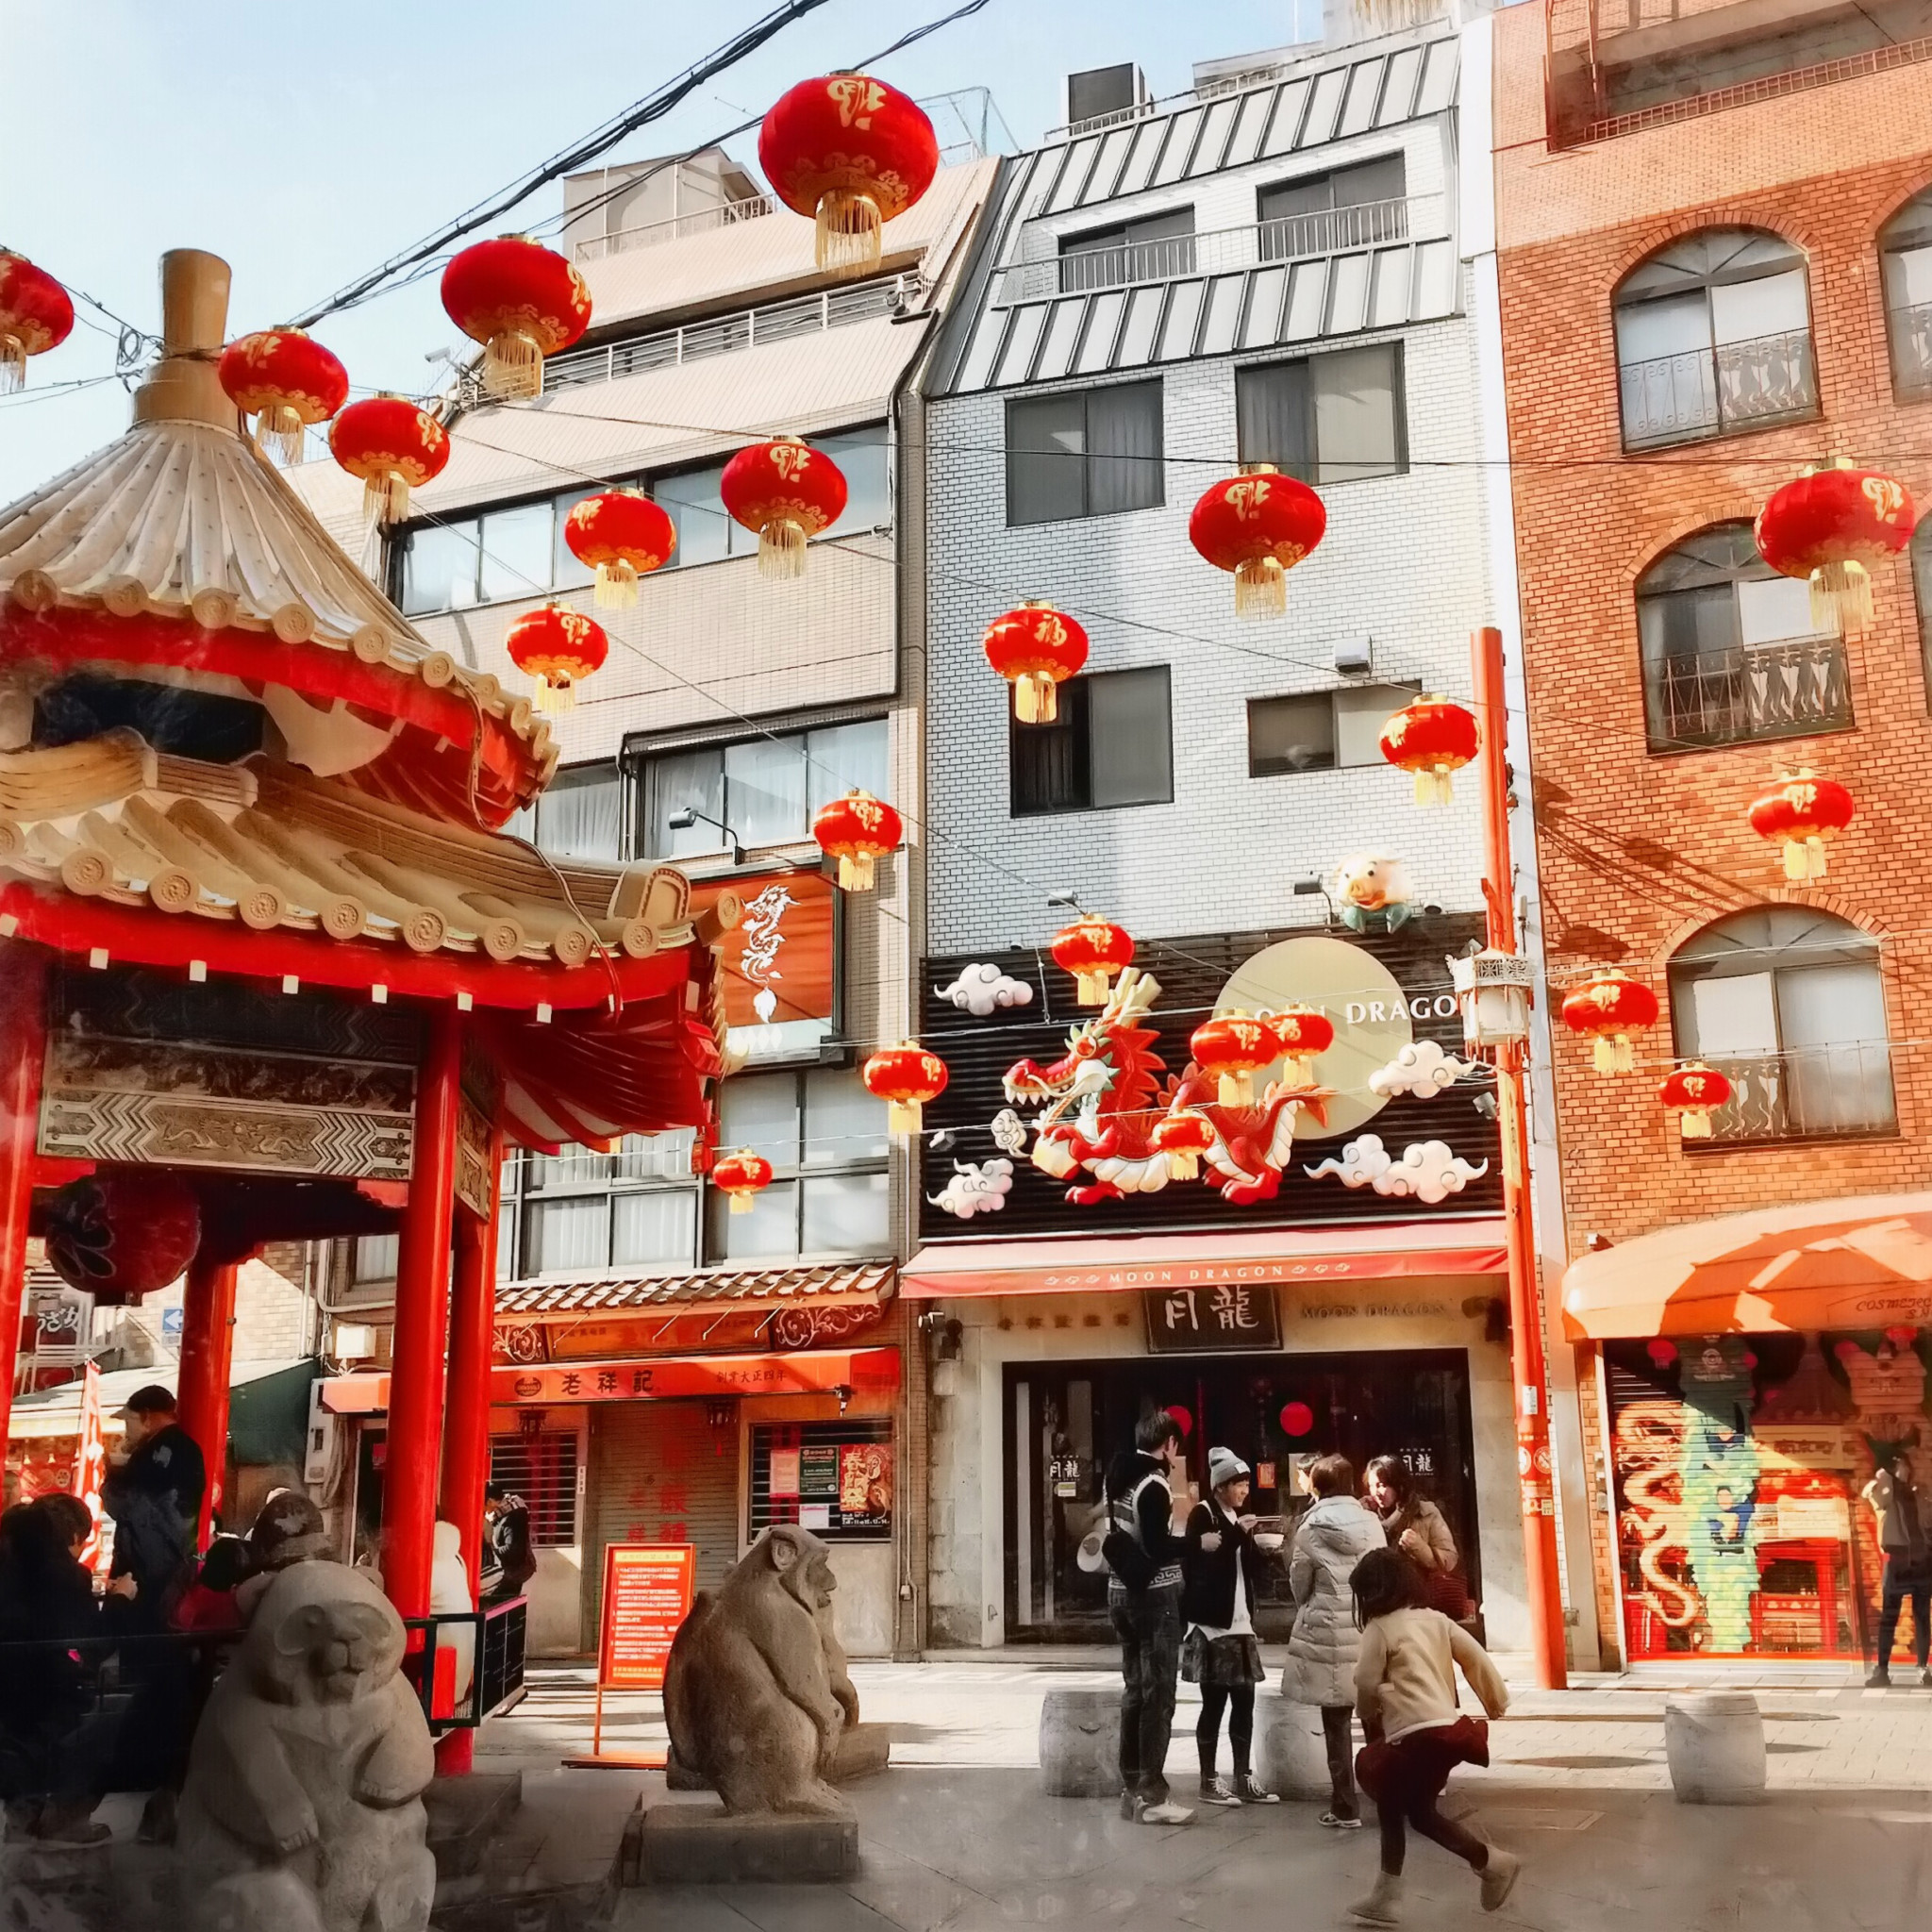 New Year's Eve in Chinatown (Kobe, Japan)